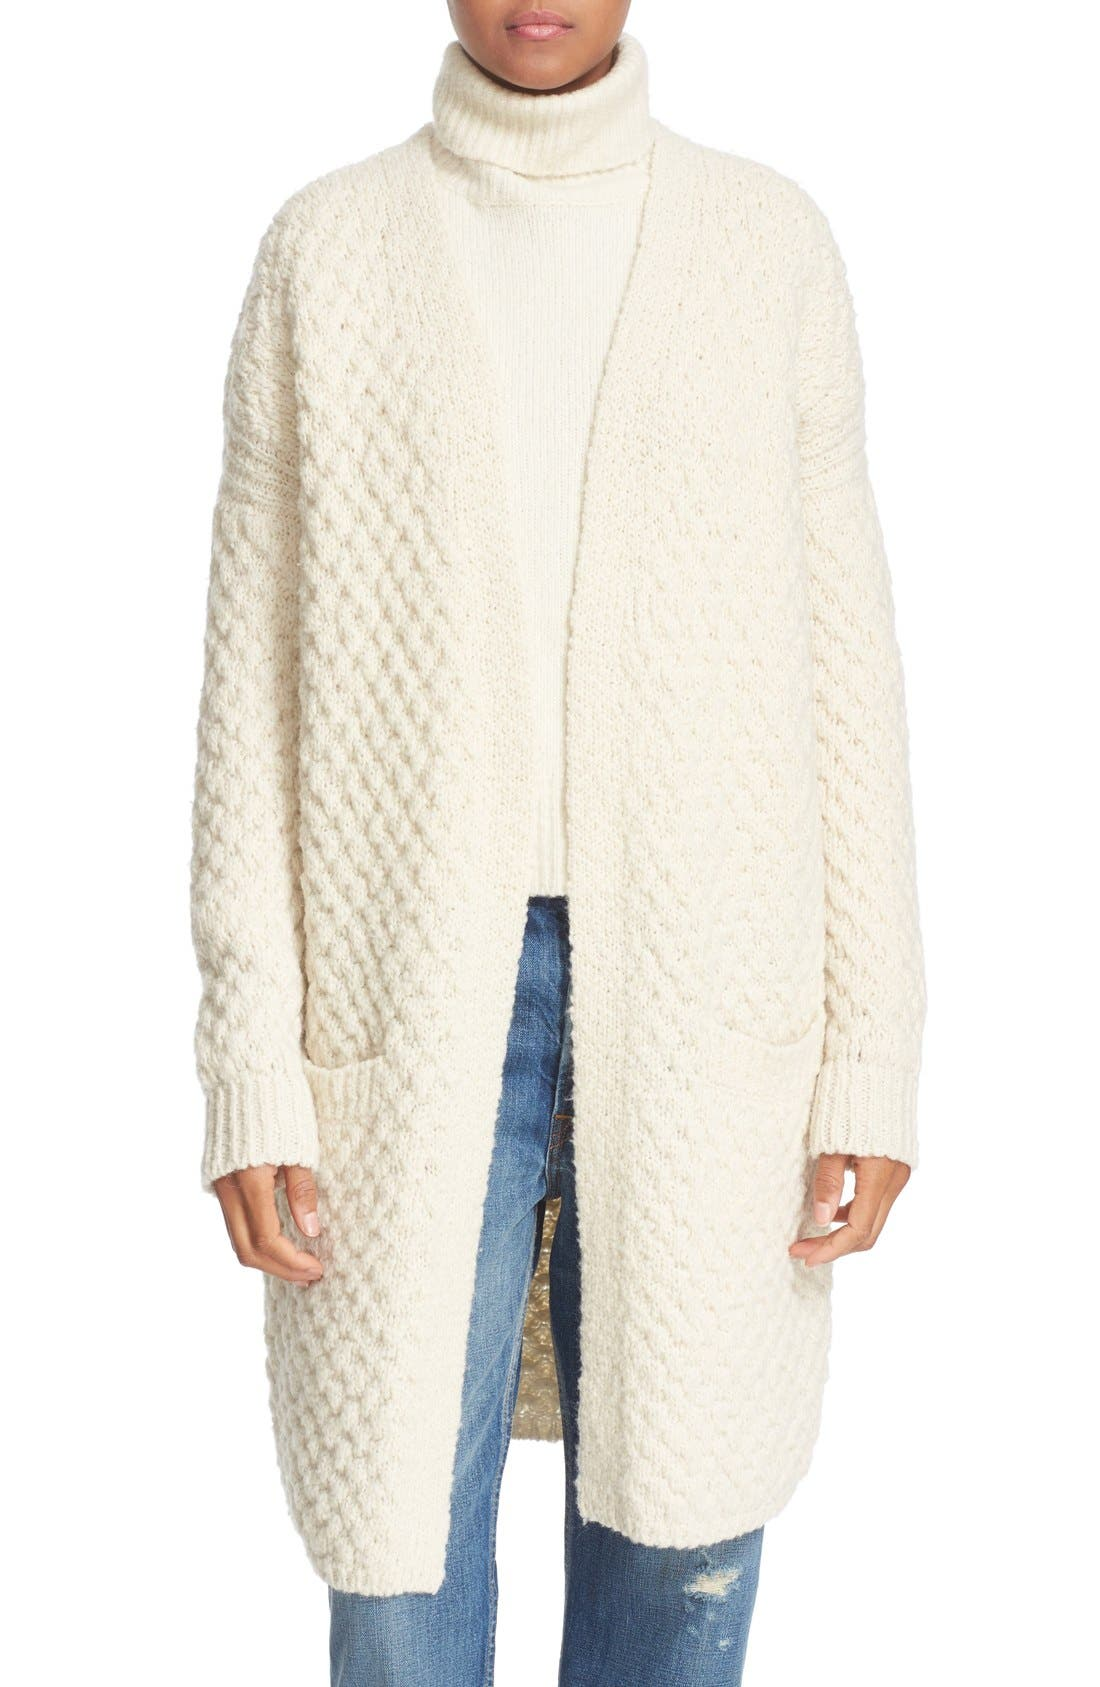 Alternate Image 1 Selected - Vince Honeycomb Wool Blend Long Cardigan